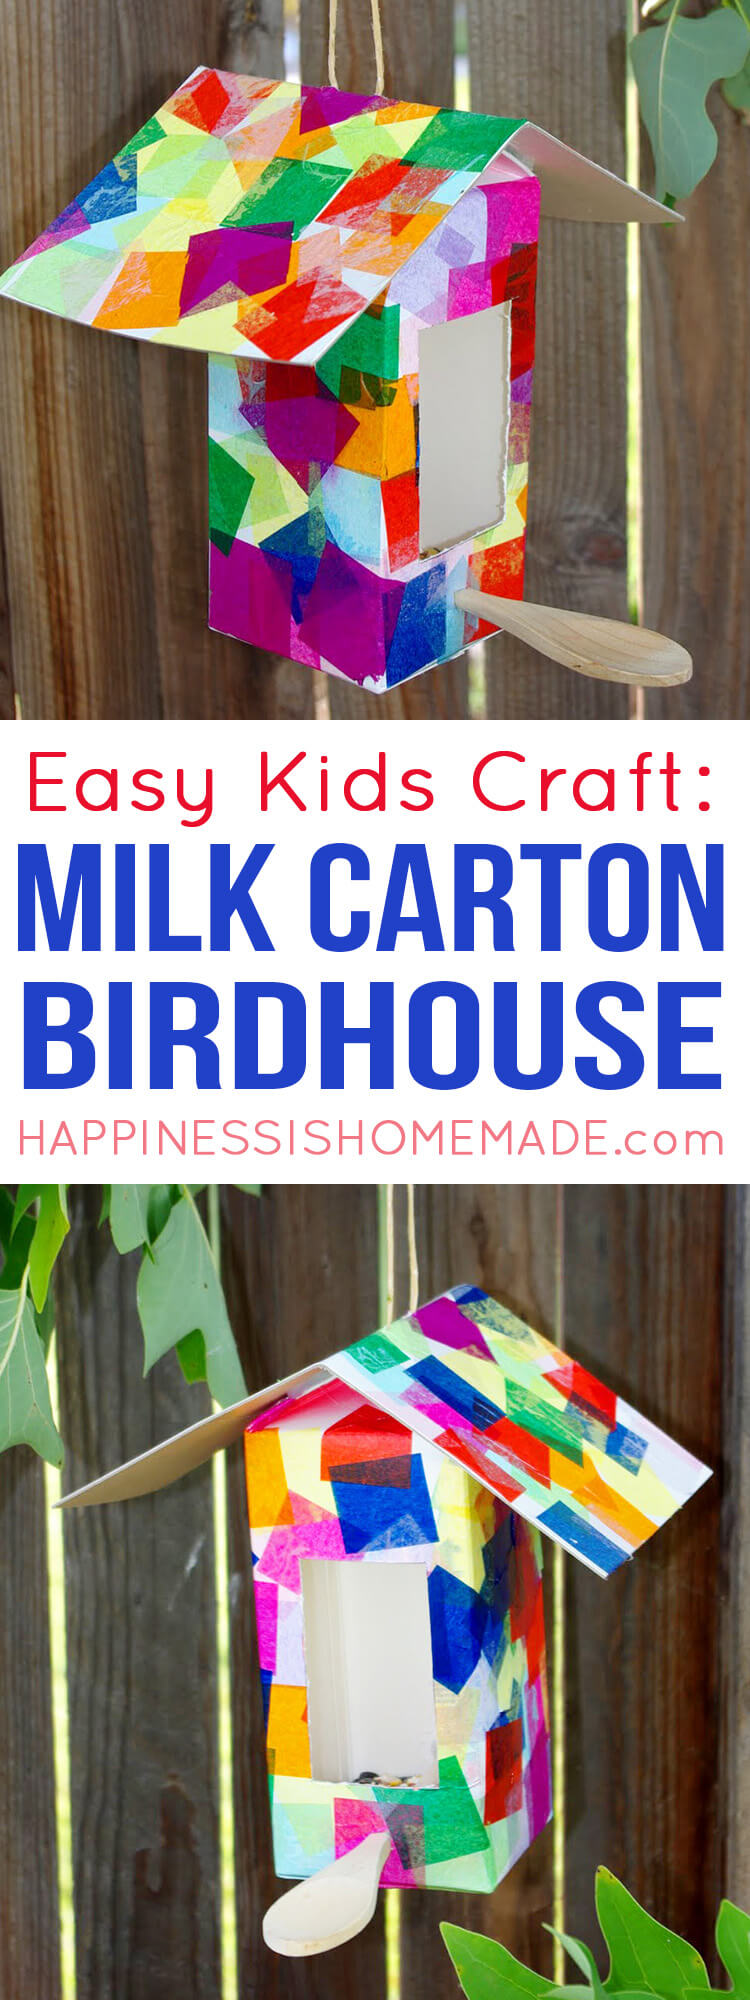 Recycled milk carton birdhouses and bird feeders are a fun quick and easy kids craft that anyone can make - perfect for kids of all ages!